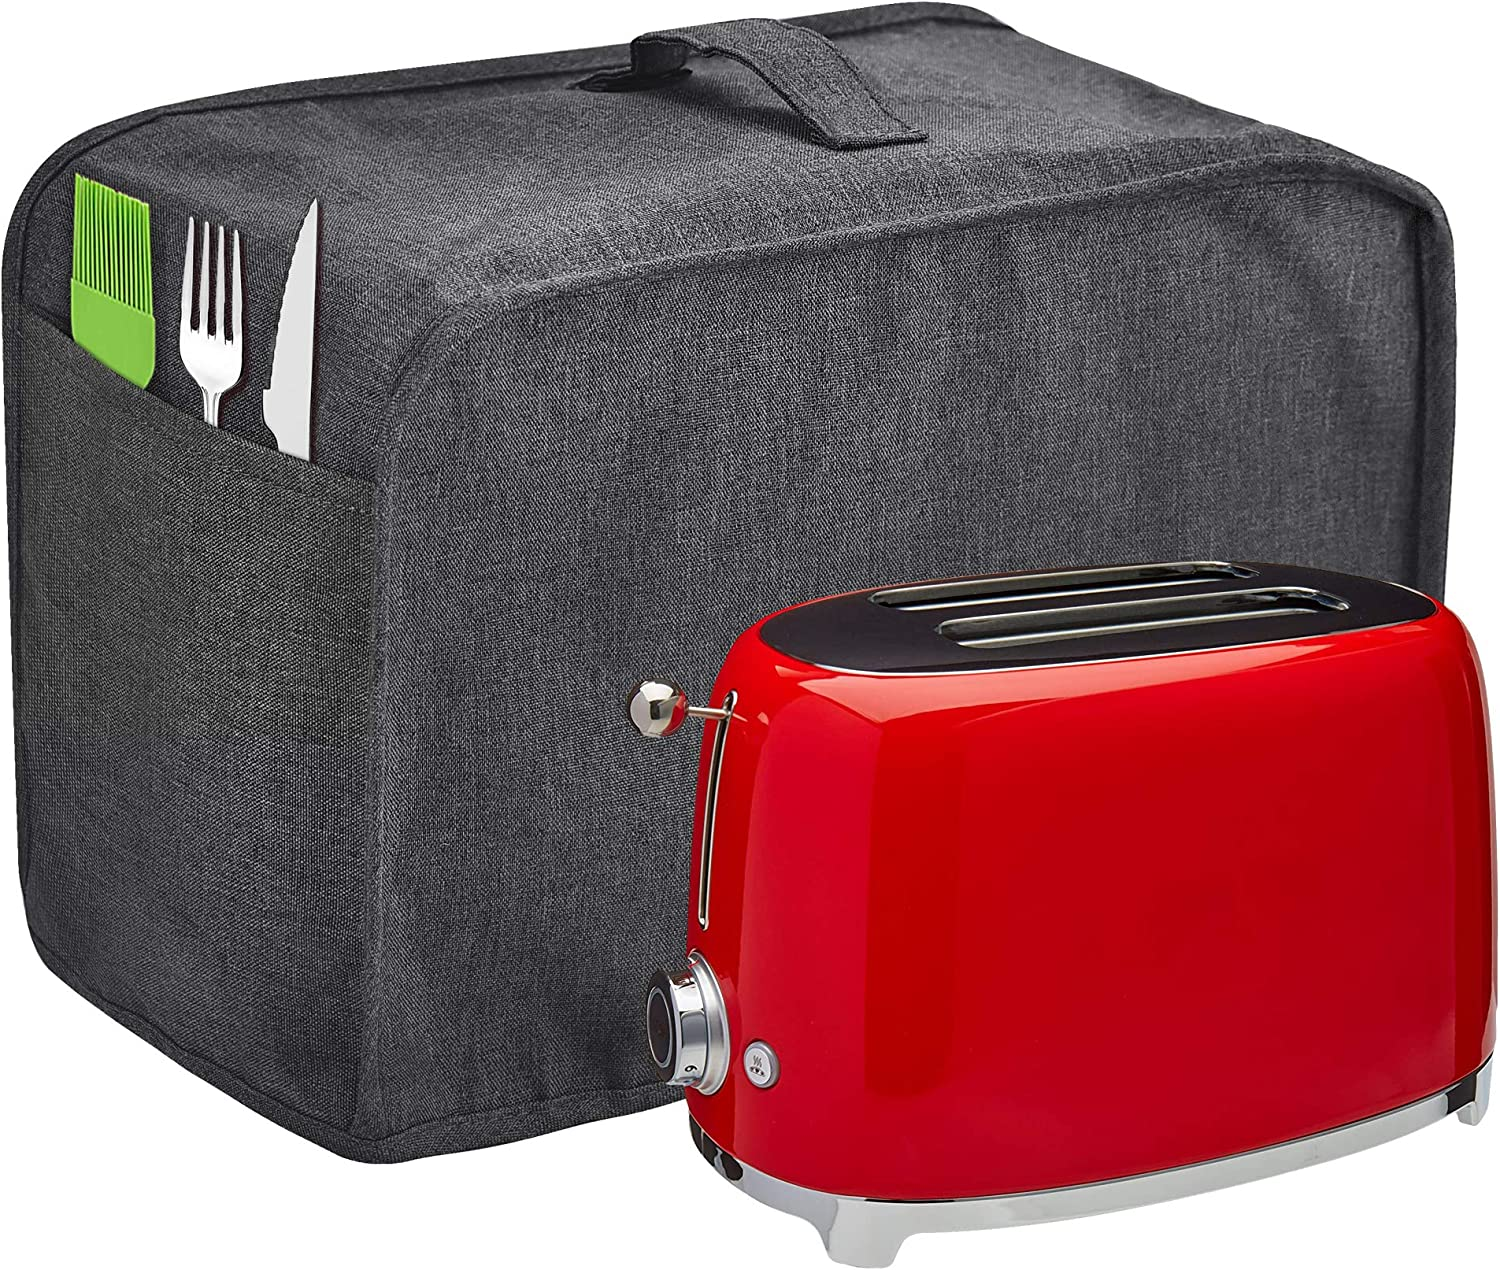 Toaster Cover with 2 Pockets,Can hold Jam Spreader Knife & Toaster Tongs, Toaster Appliance Cover with Top handle,Dust and Fingerprint Protection, Machine Washable (Grey, 2 Slice)